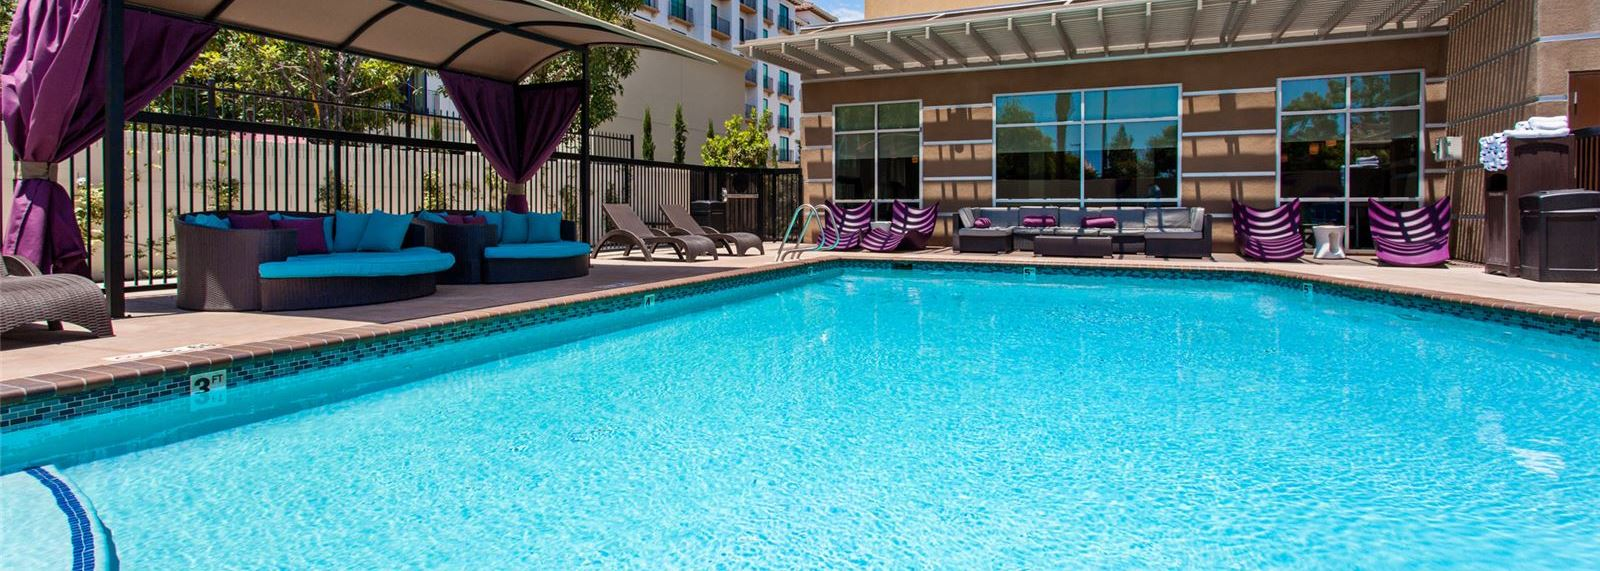 Holiday Inn Express & Suites - Anaheim Resort Area